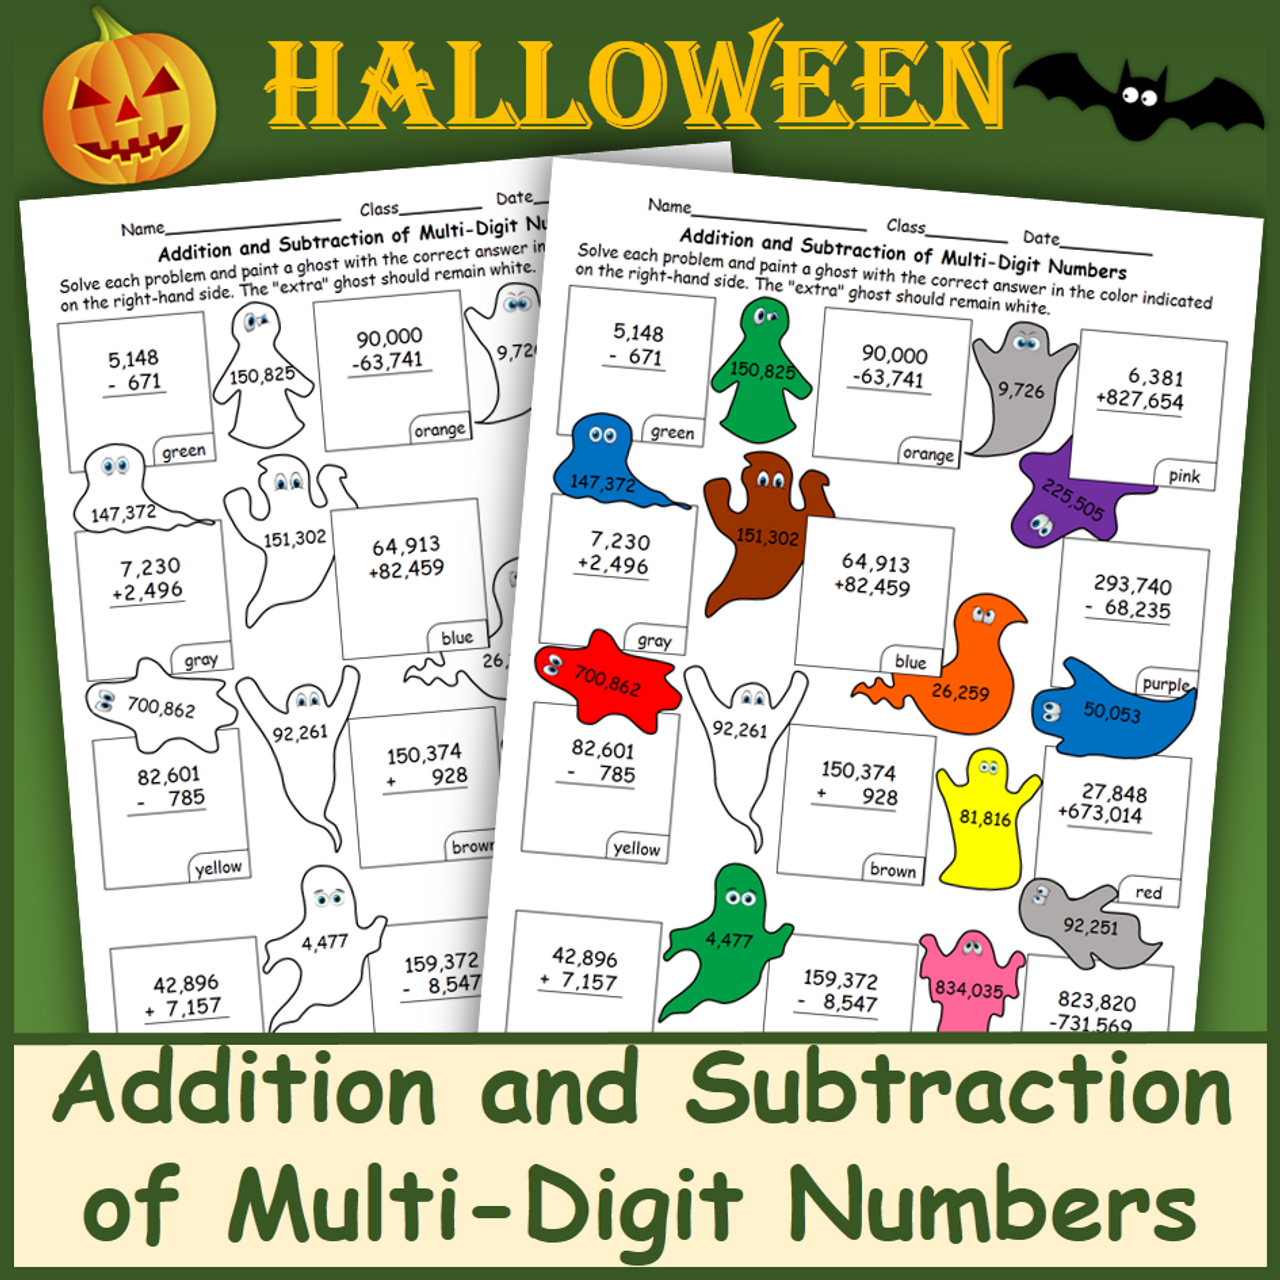 Addition and Subtraction of Multi-Digit Numbers Halloween